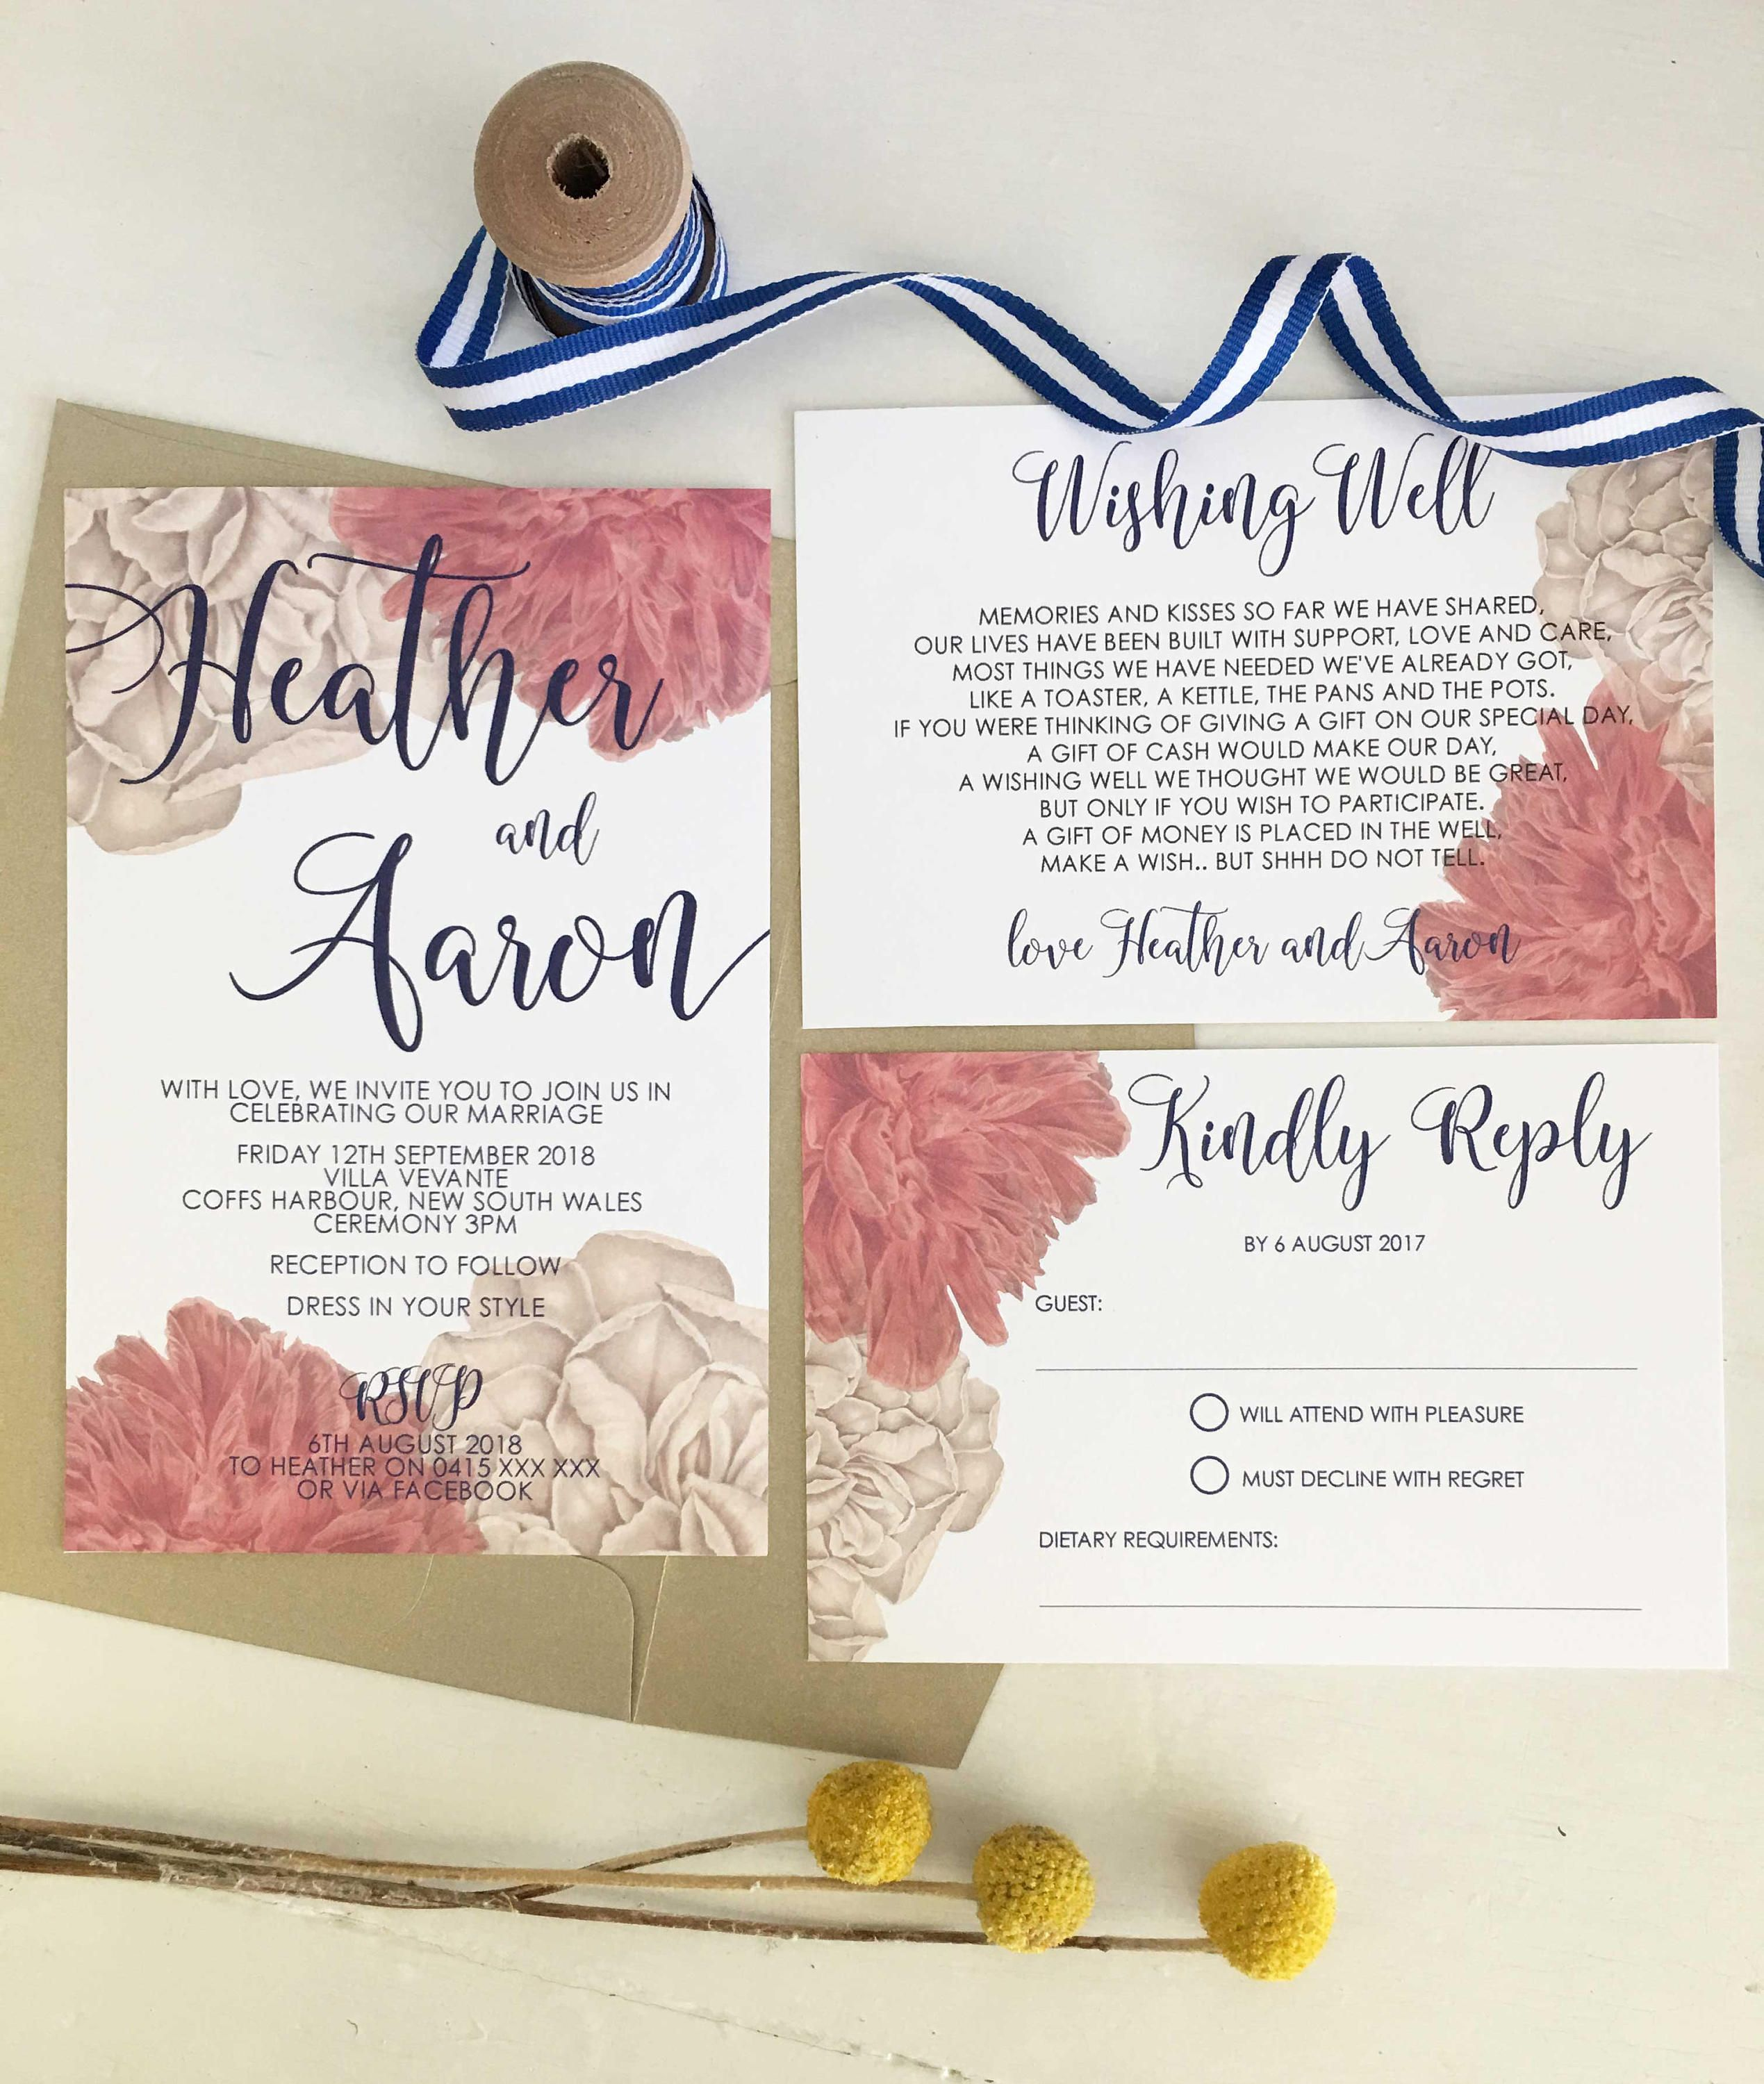 Floral and navy wedding invitation by CocoPressDesigns